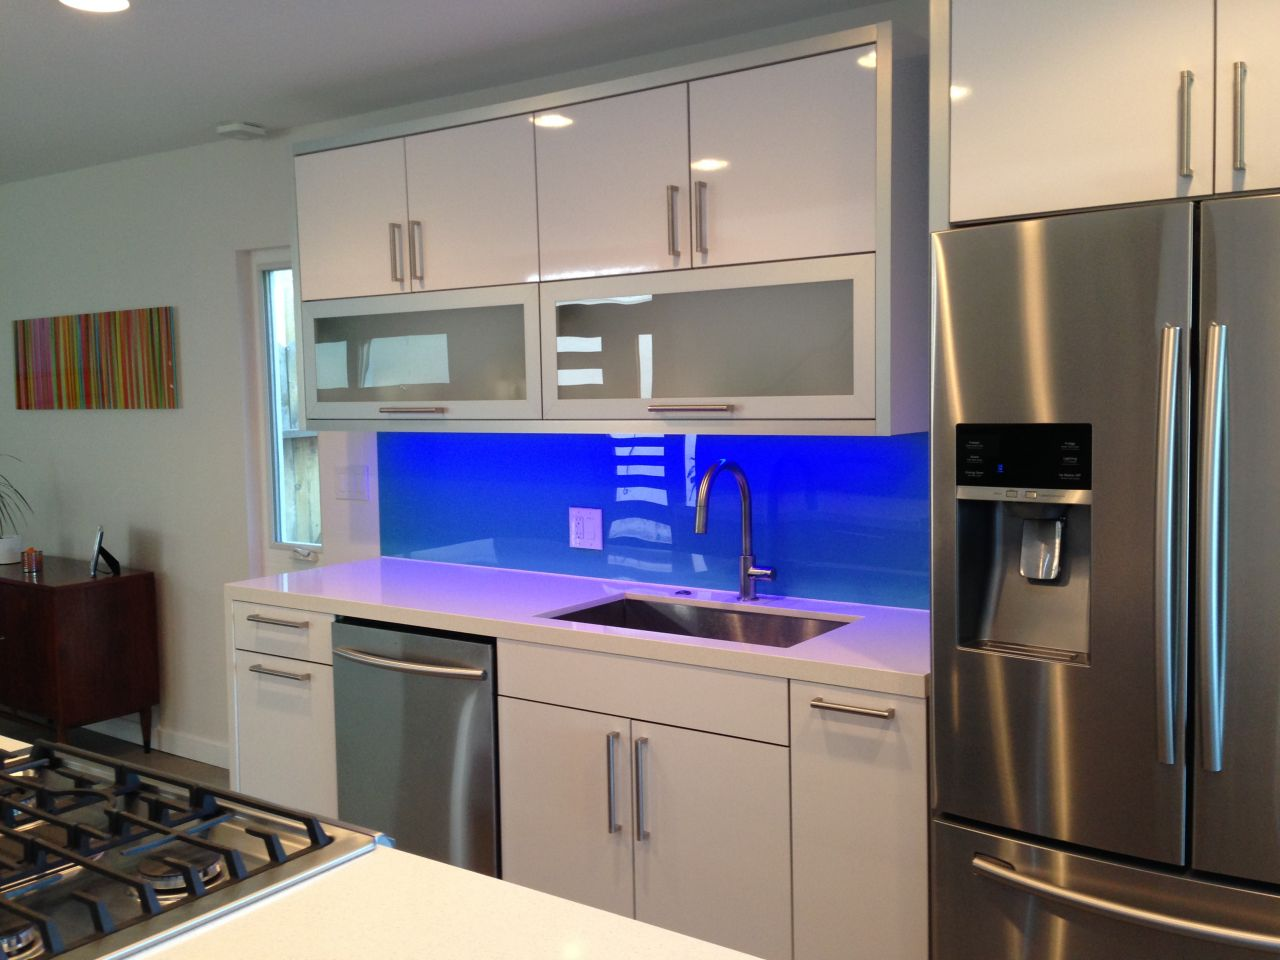 Kitchen Cabinet Textured Glass 7 Frequently Asked Questions Faq About High Gloss Bath